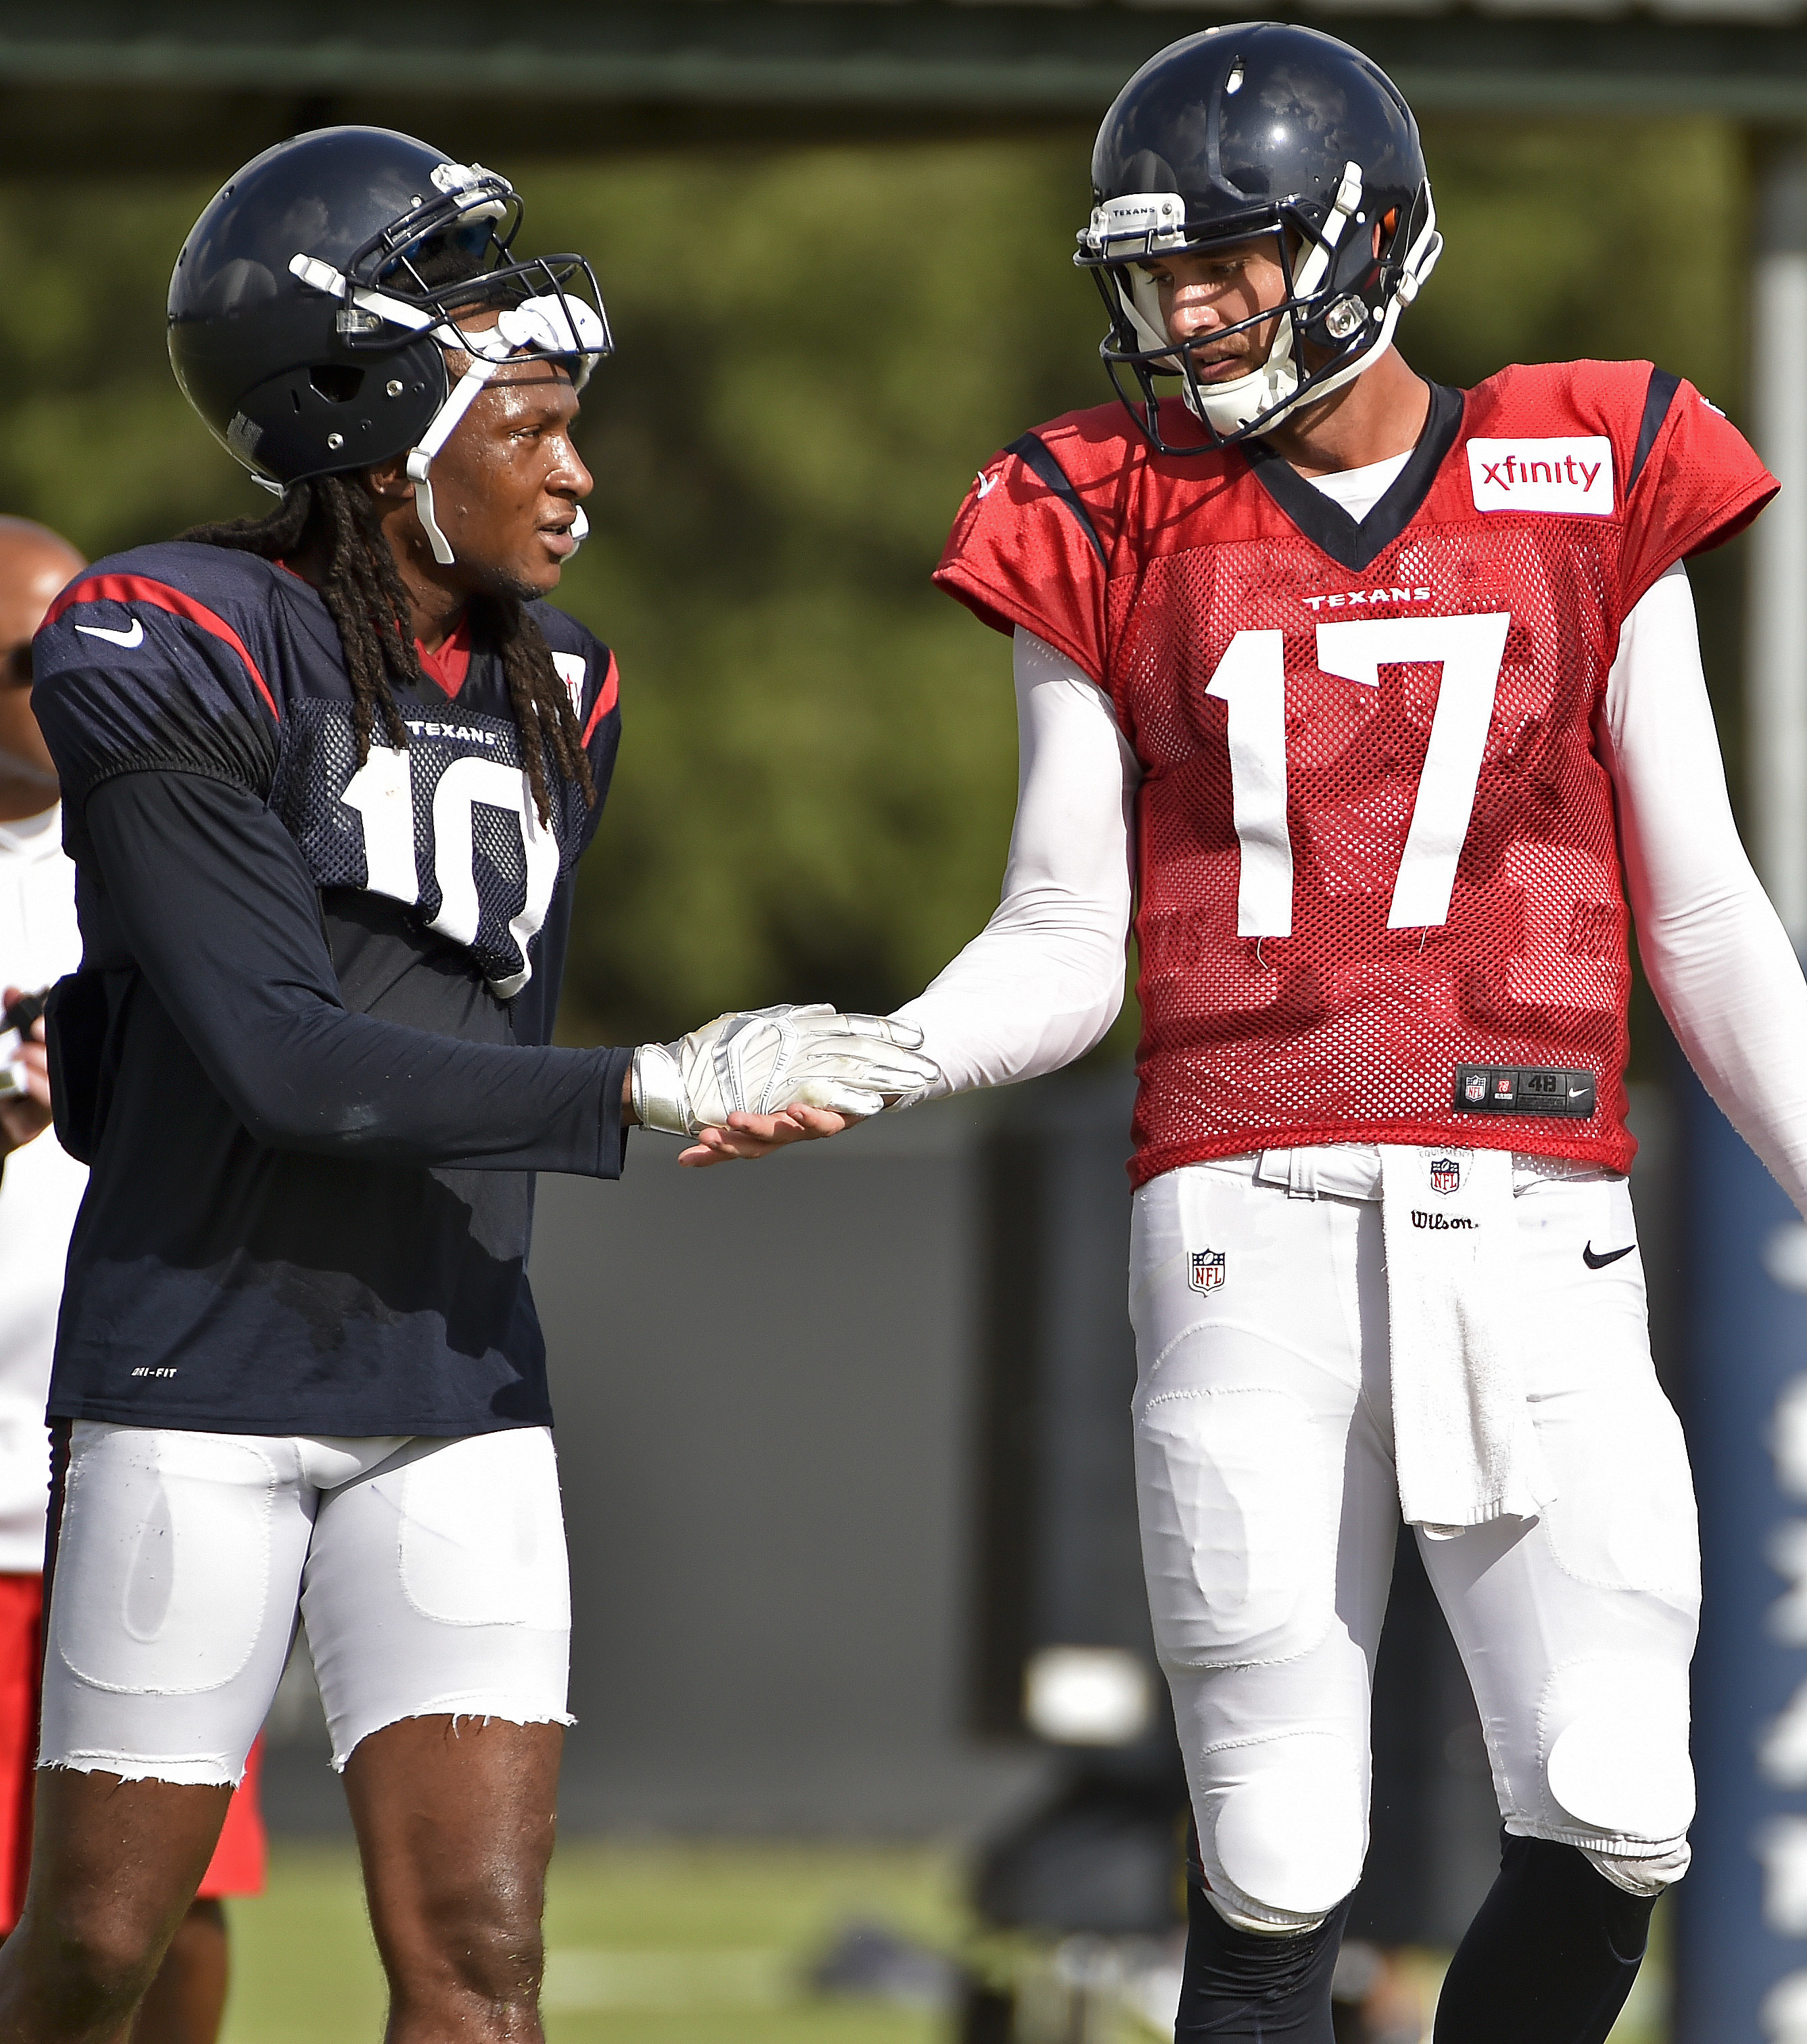 Houston Texans wide receiver DeAndre Hopkins, left, shakes hands with Houston Texans quarterback Brock Osweiler during a practice at the NFL football team's training camp, Saturday, Aug. 6, 2016, in Houston. (AP Photo/Eric Christian Smith)